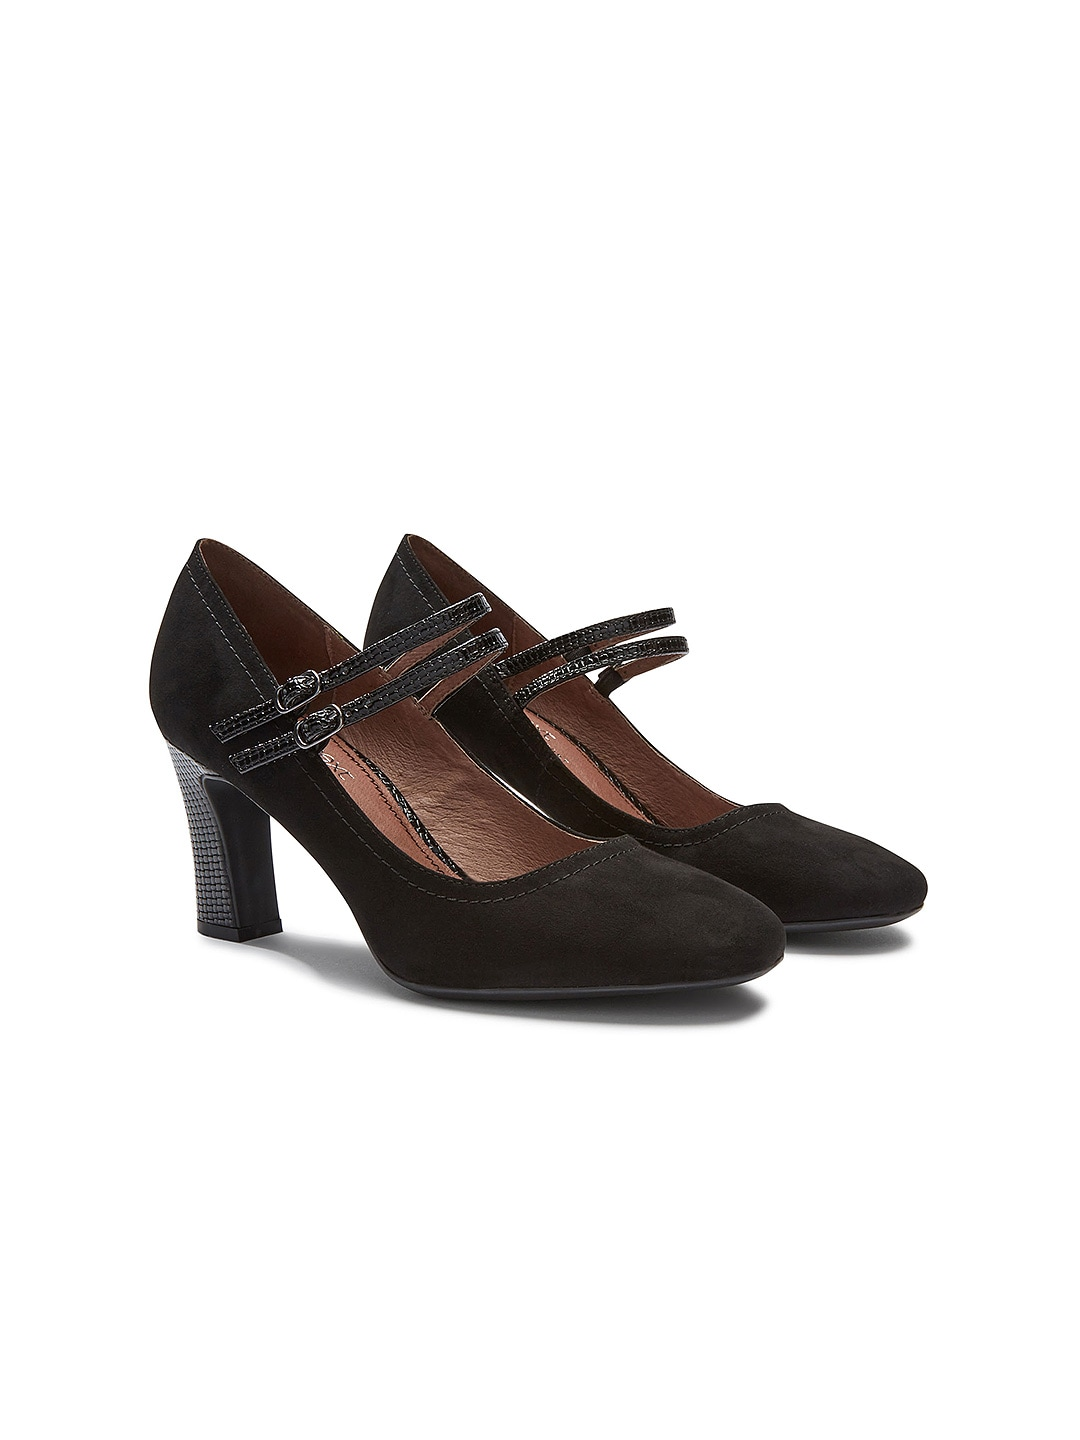 next almond toe court shoes for women get stylish shoes